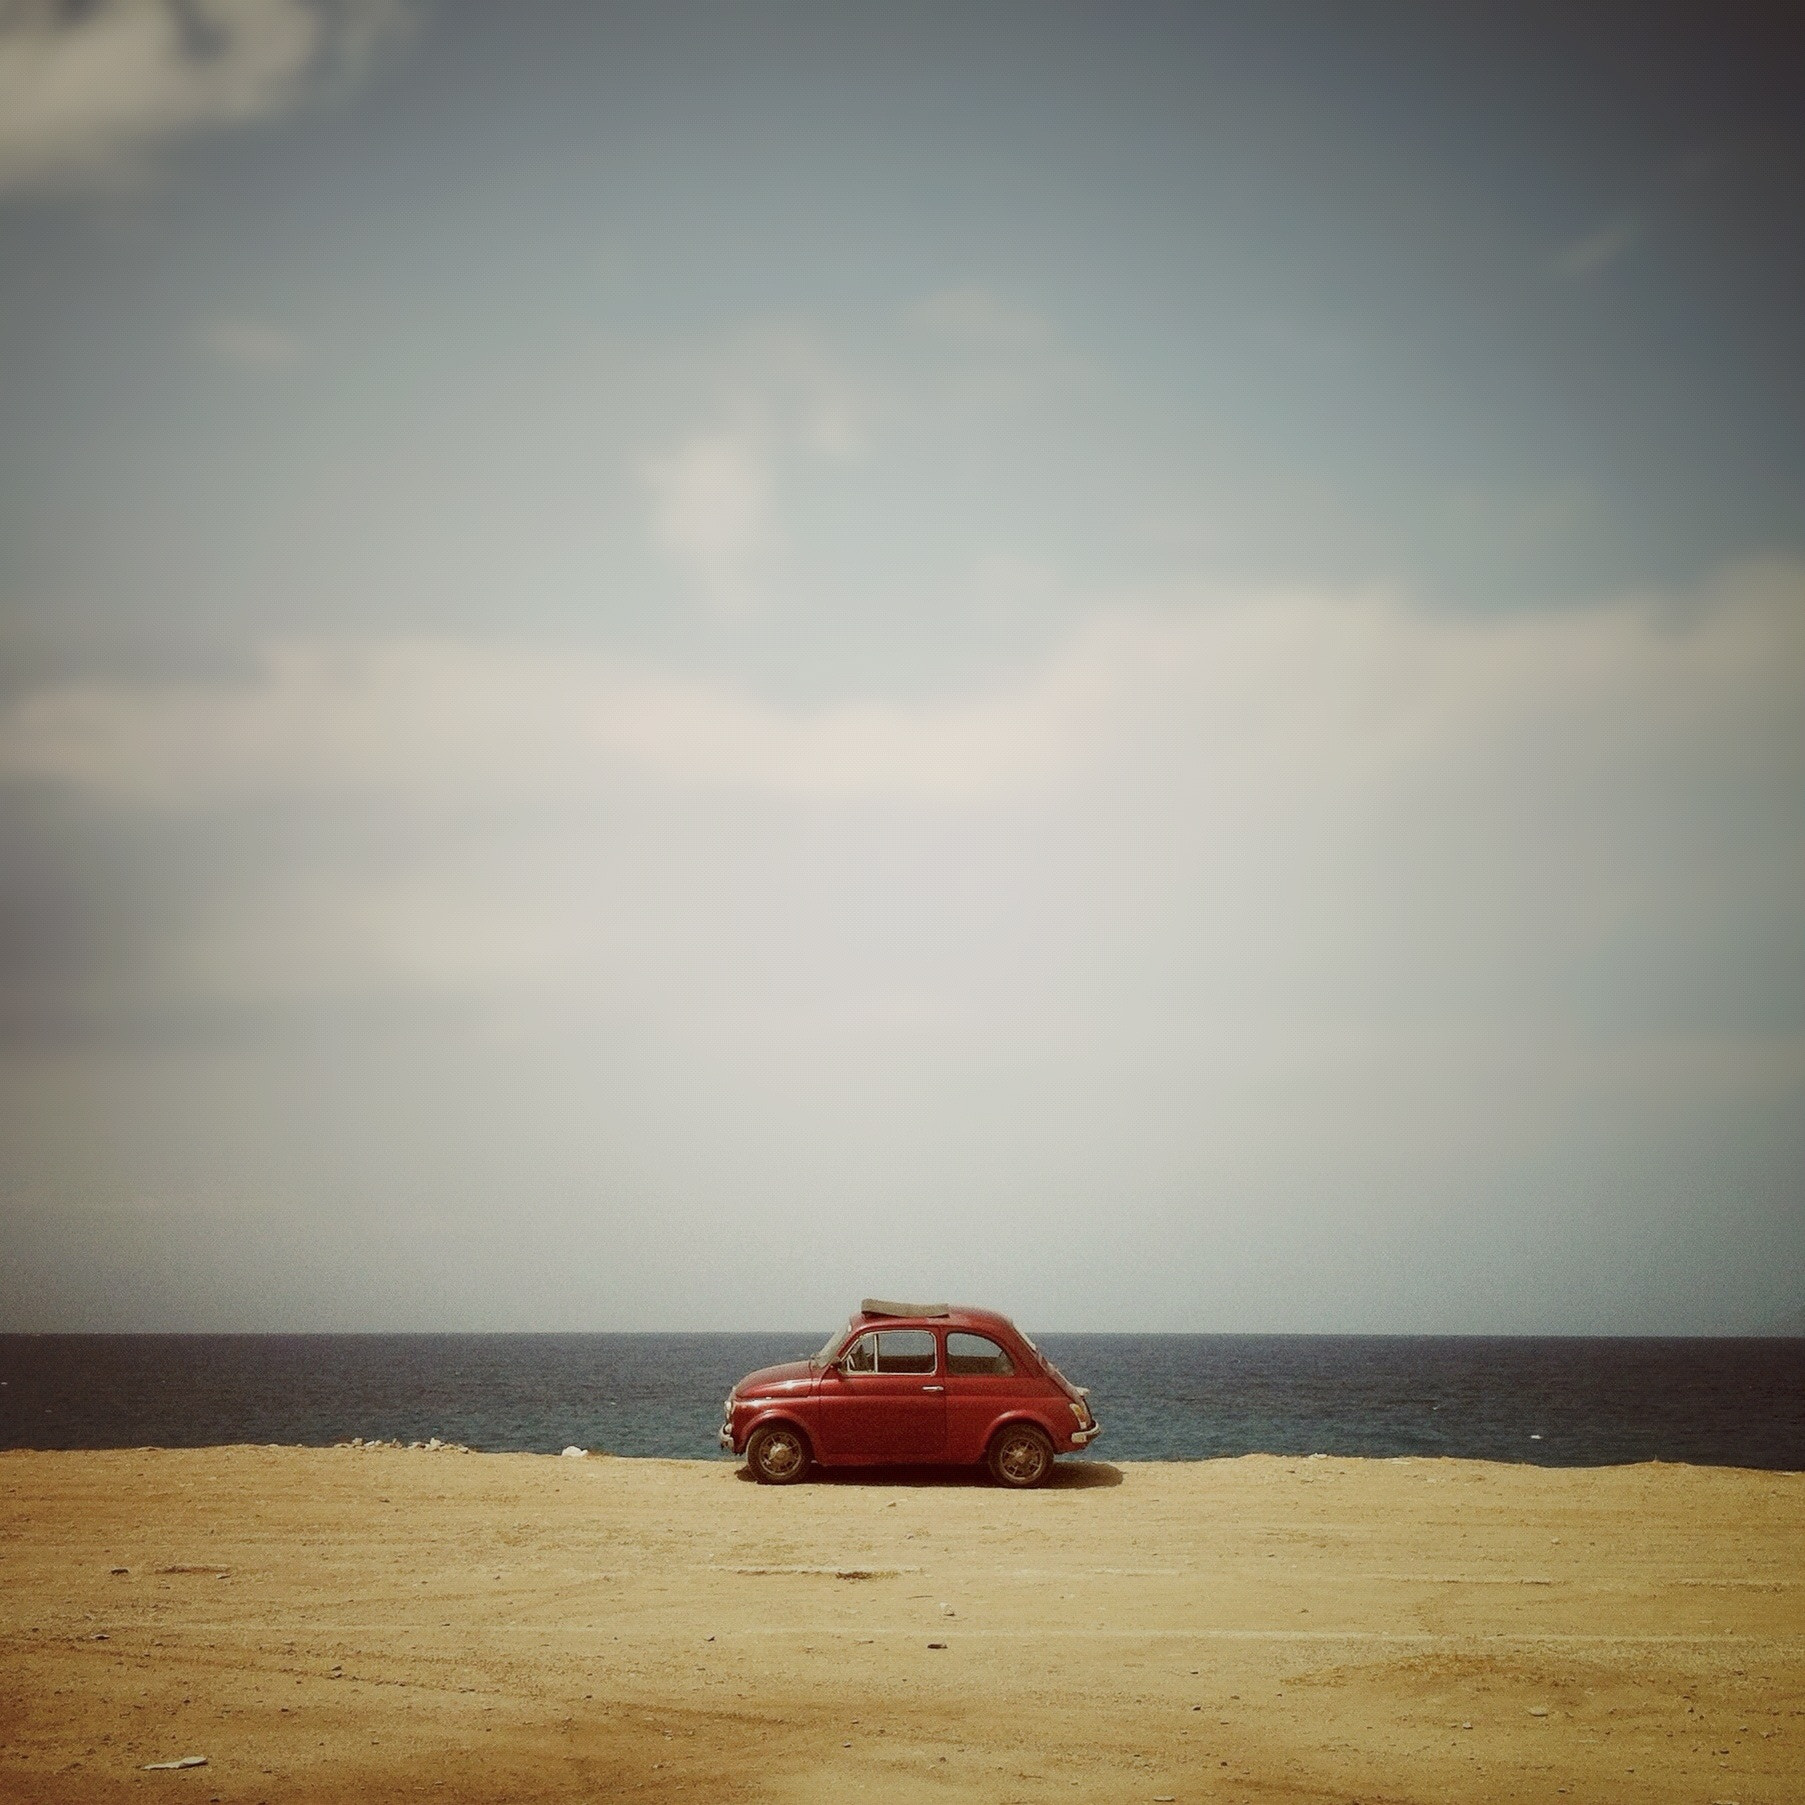 Photograph Fiat 500 by Simone Cento on 500px